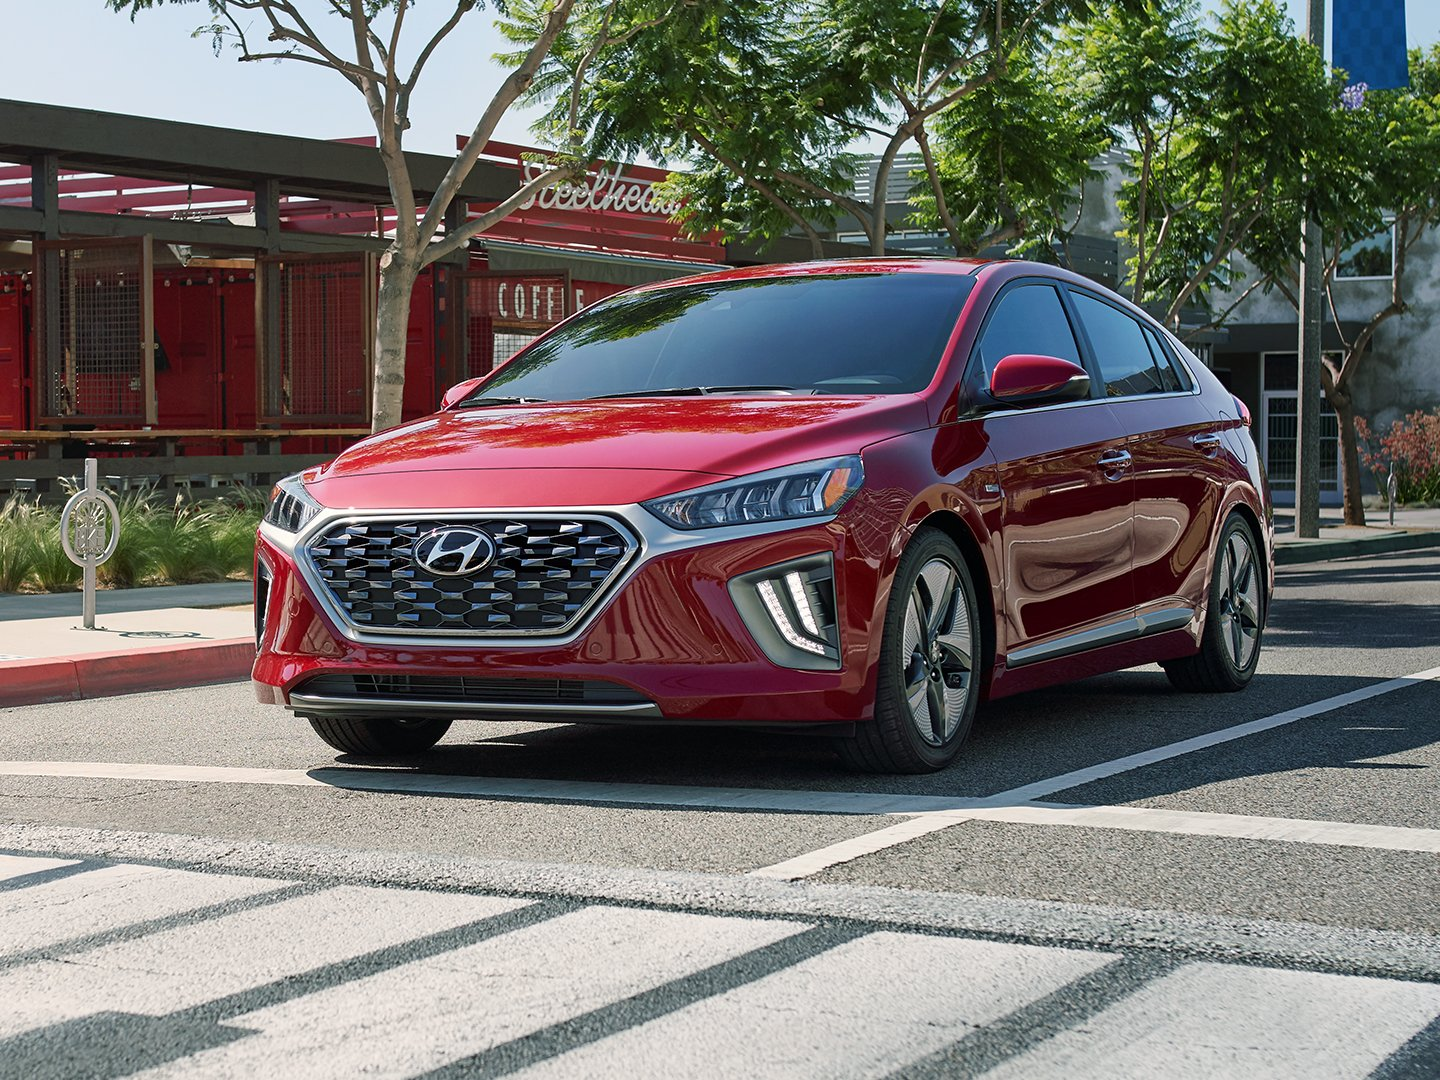 2020 Ioniq Hybrid in Scarlet Red at stop sign